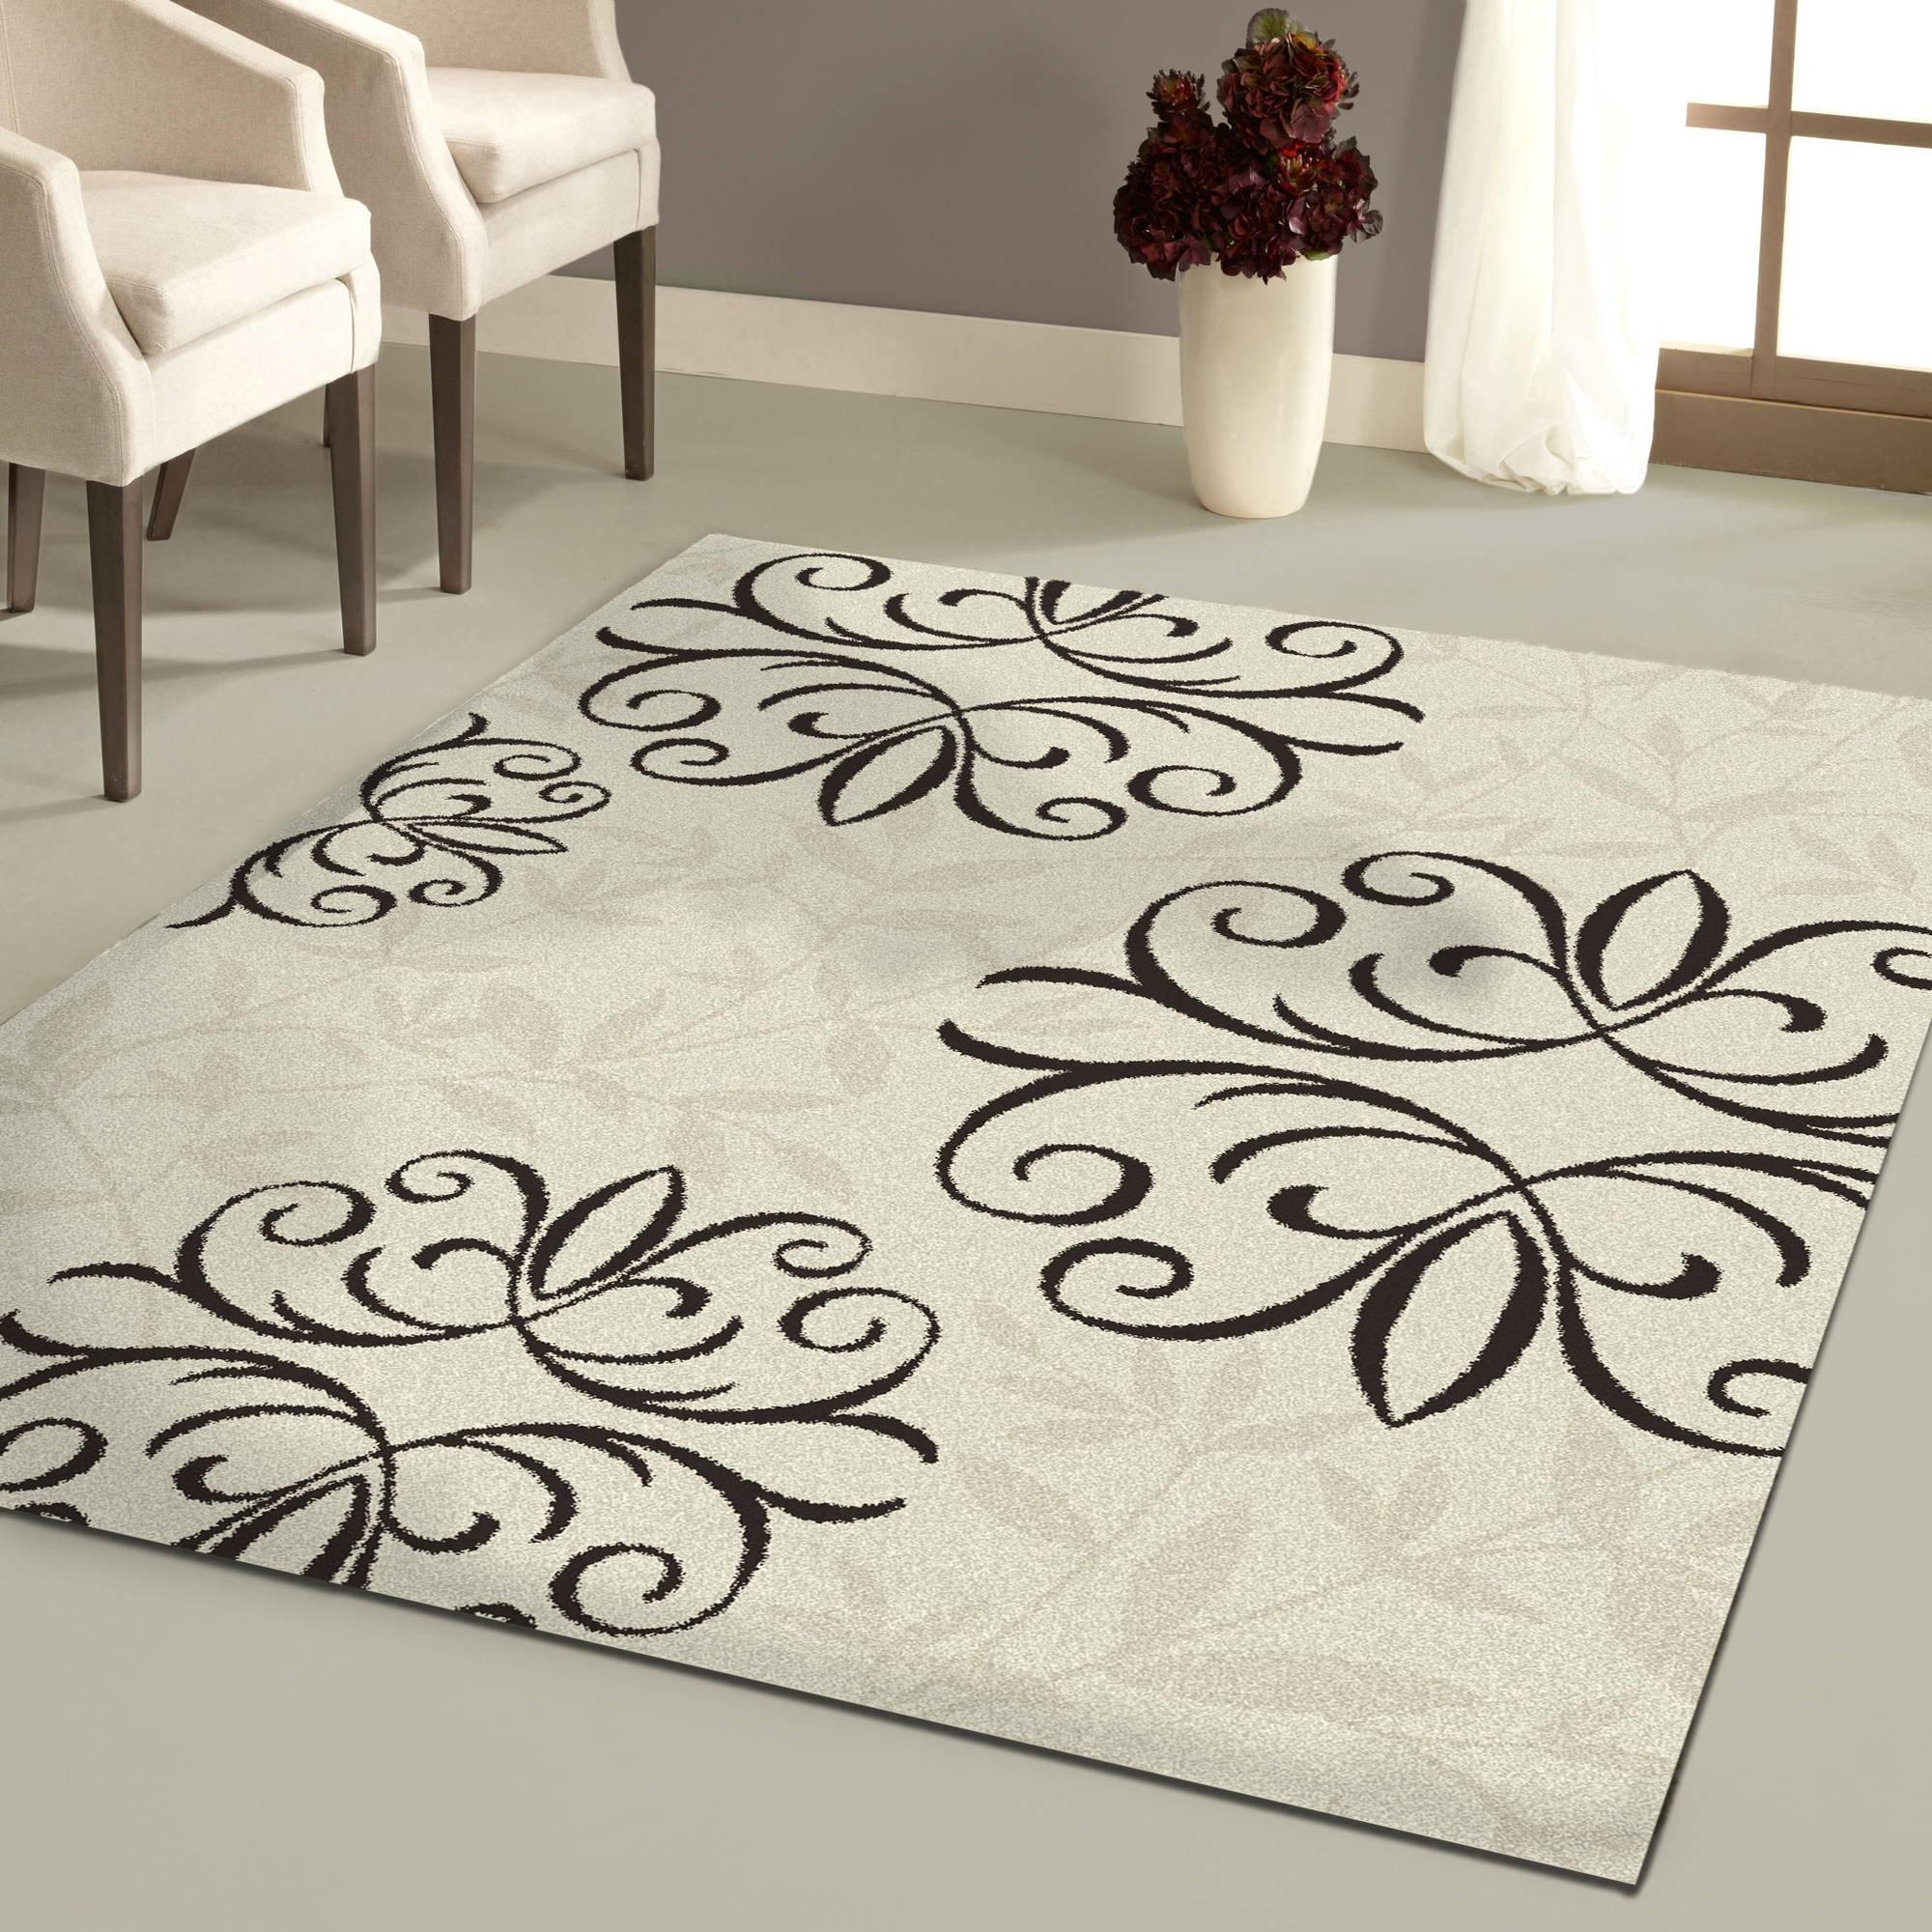 White Berber Area Rug Images Home Furniture Ideas With Wool Berber Area Rugs (View 7 of 15)